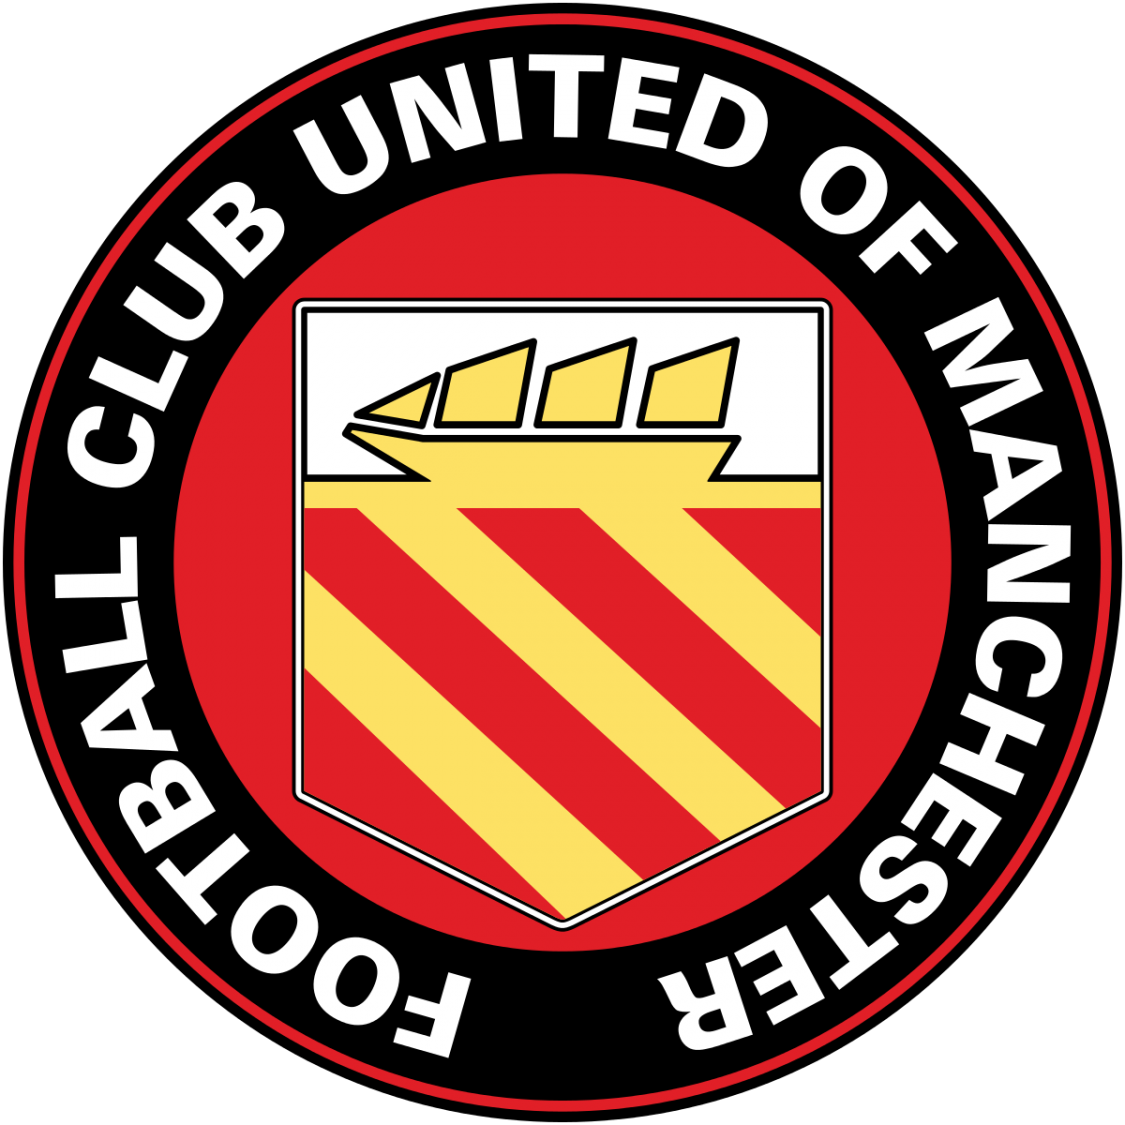 1200px-FC_United_of_Manchester_crest_svg.thumb.png.0bf7e0481d788486a5905237a89bd8d2.png